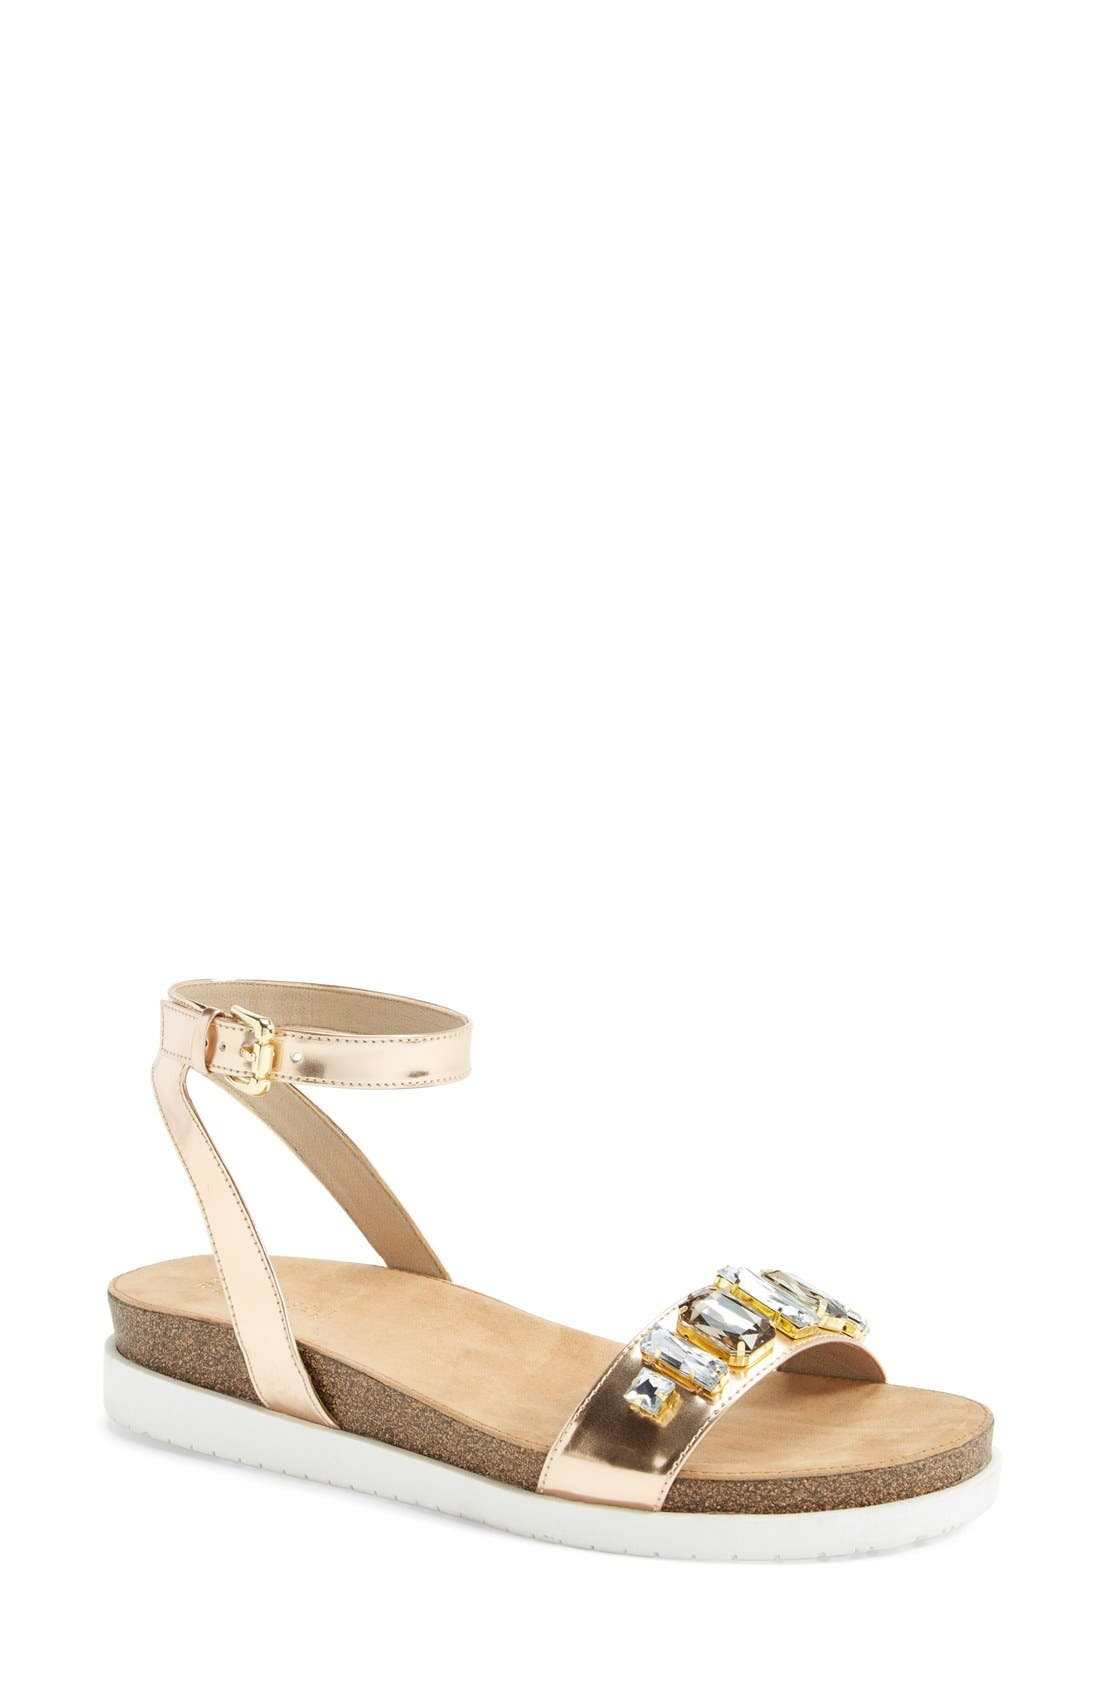 Alternate Image 1 Selected - Kenneth Cole Reaction 'So Wild' Ankle Strap Sandal (Women)